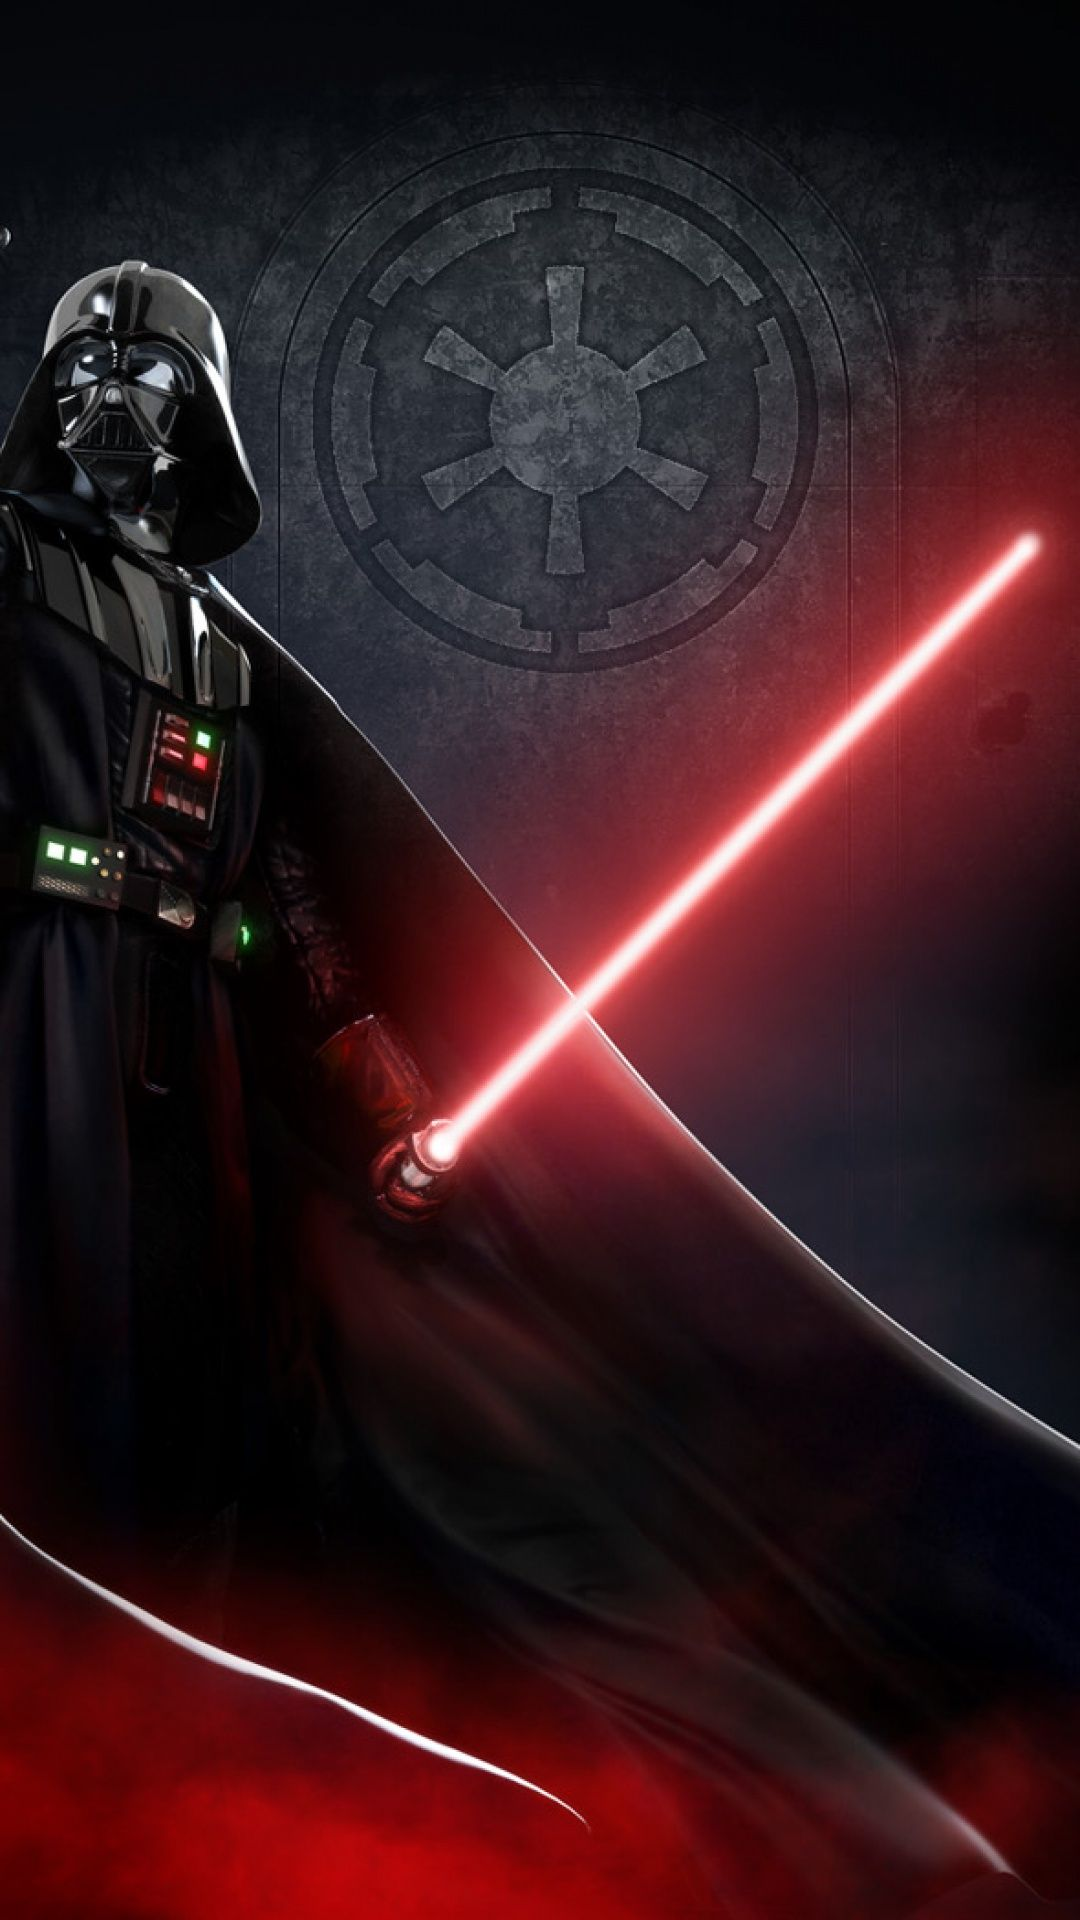 star-wars-wallpaper-for-android-1080x1920-_